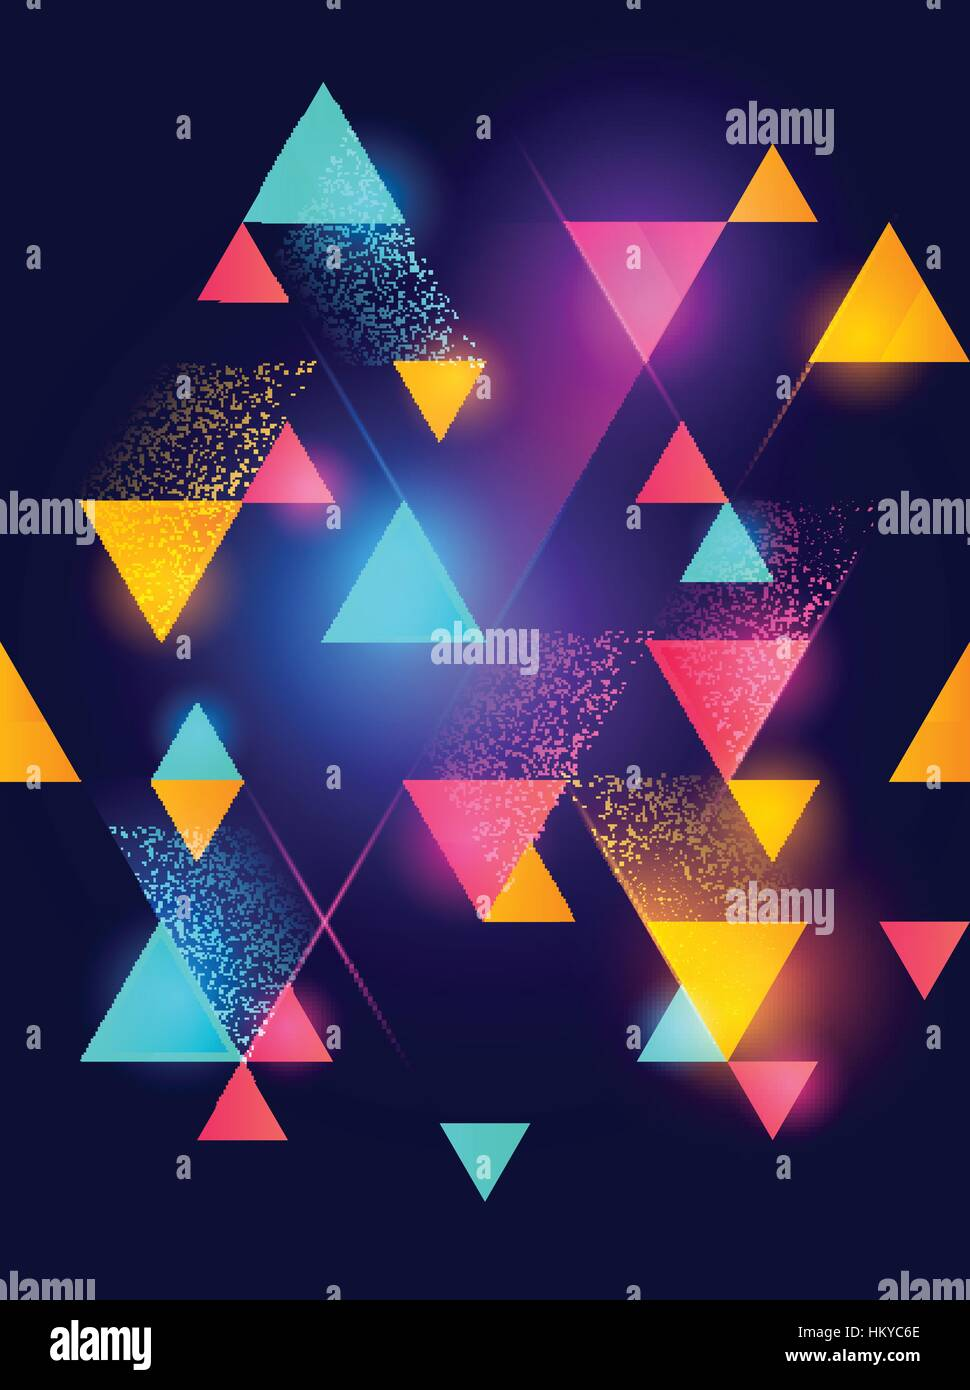 Glowing neon geometric pattern background. Vector illustration. - Stock Image